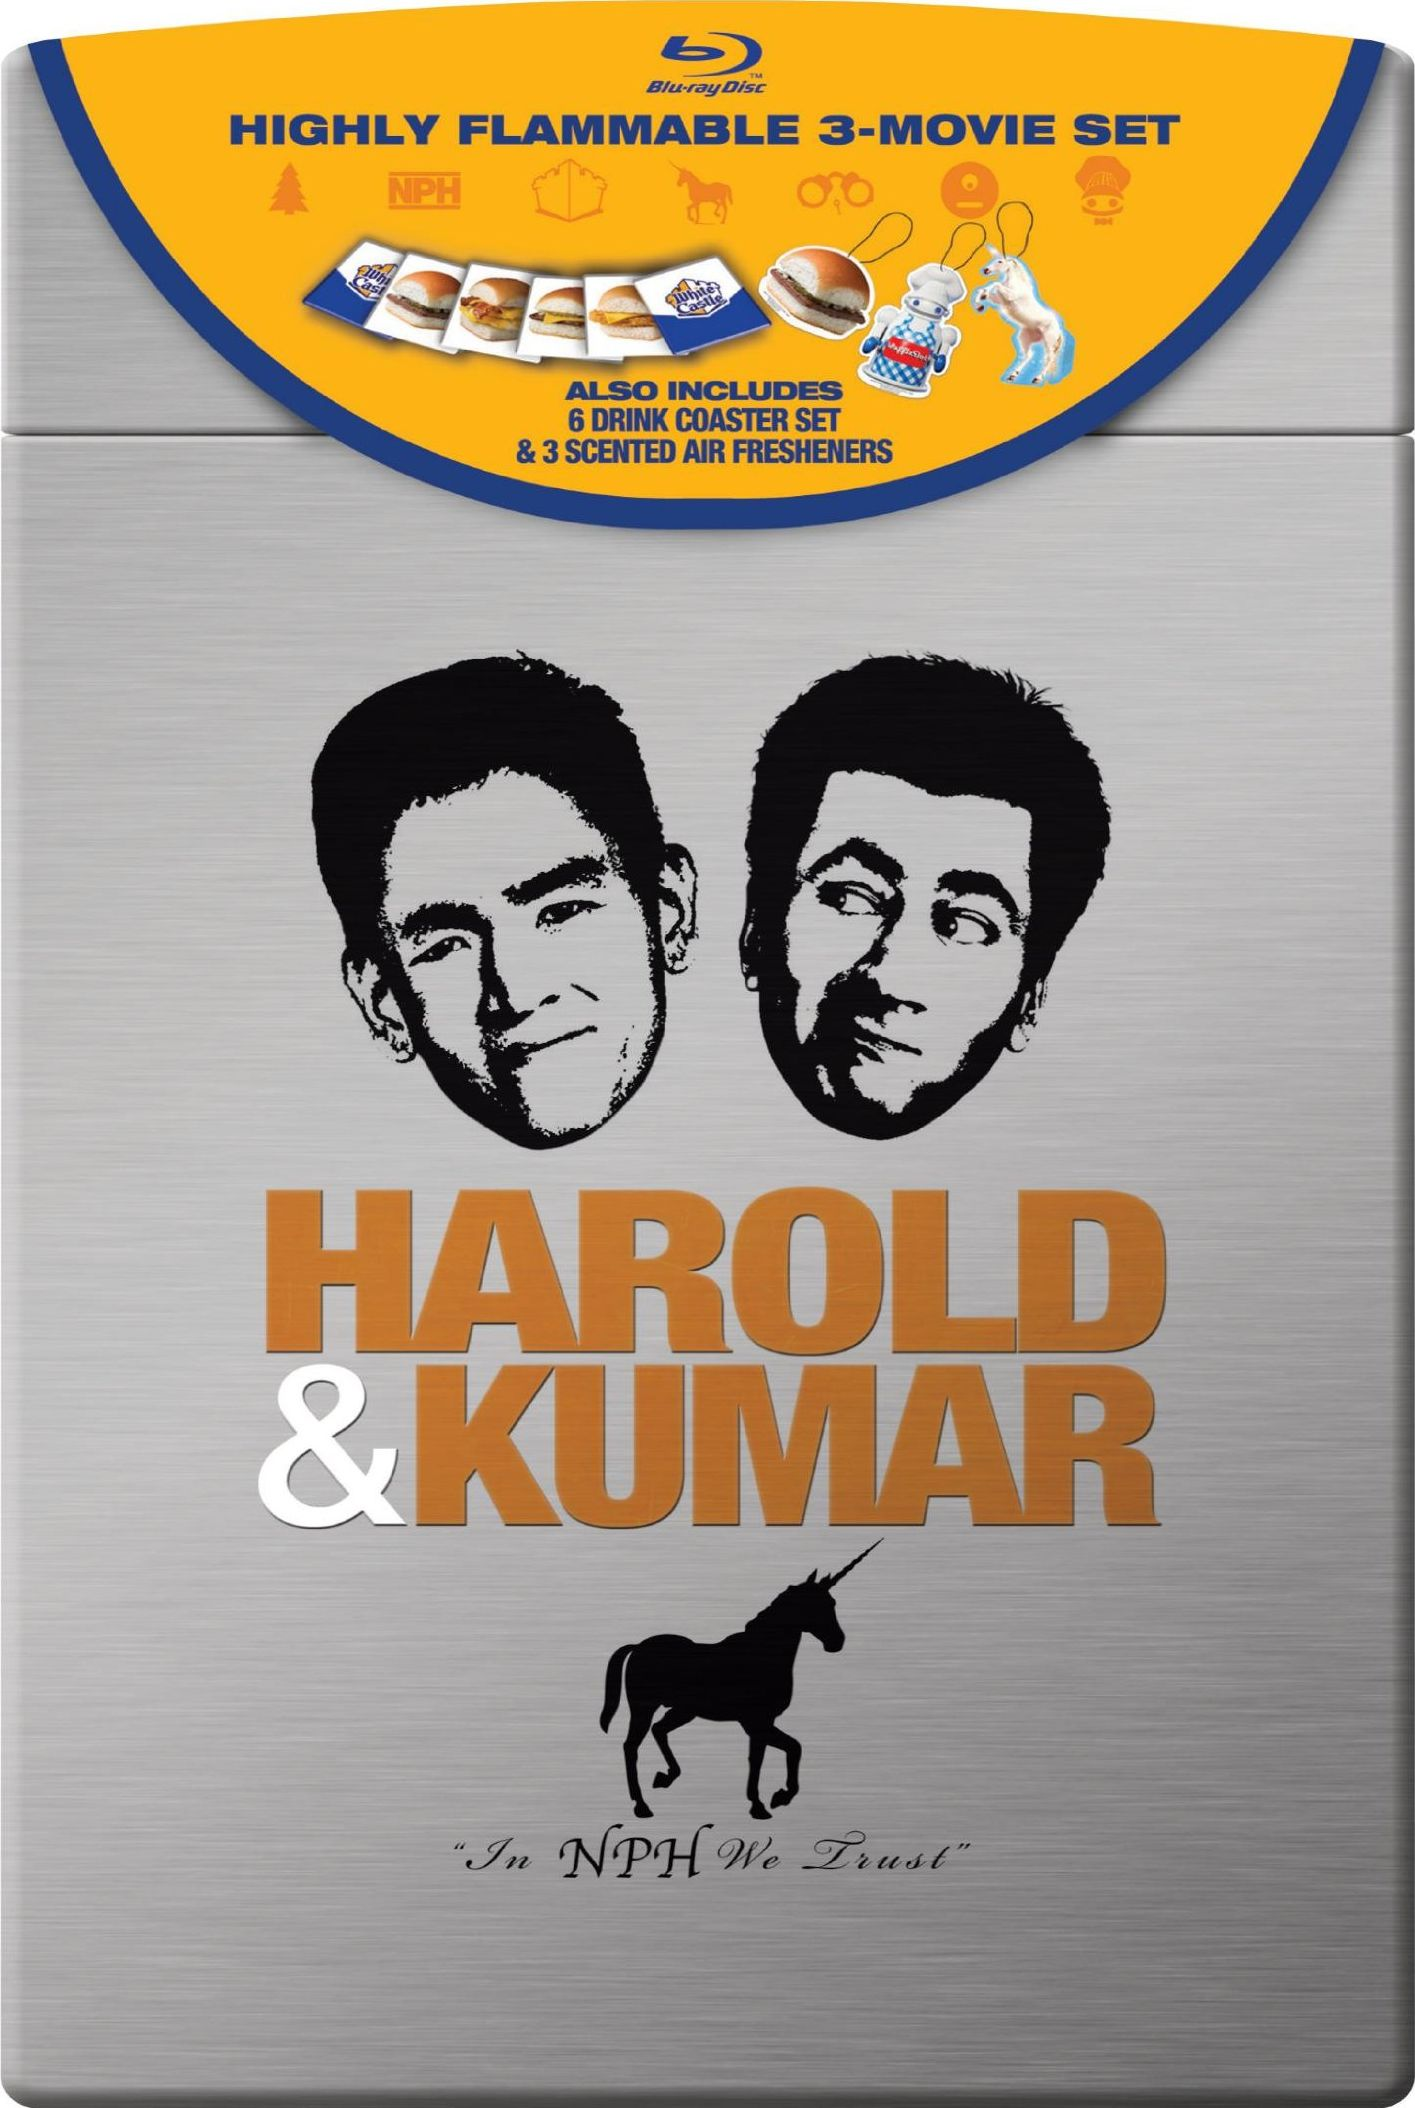 Harold & Kumar Ultimate Collector's Edition Blu-Ray Review